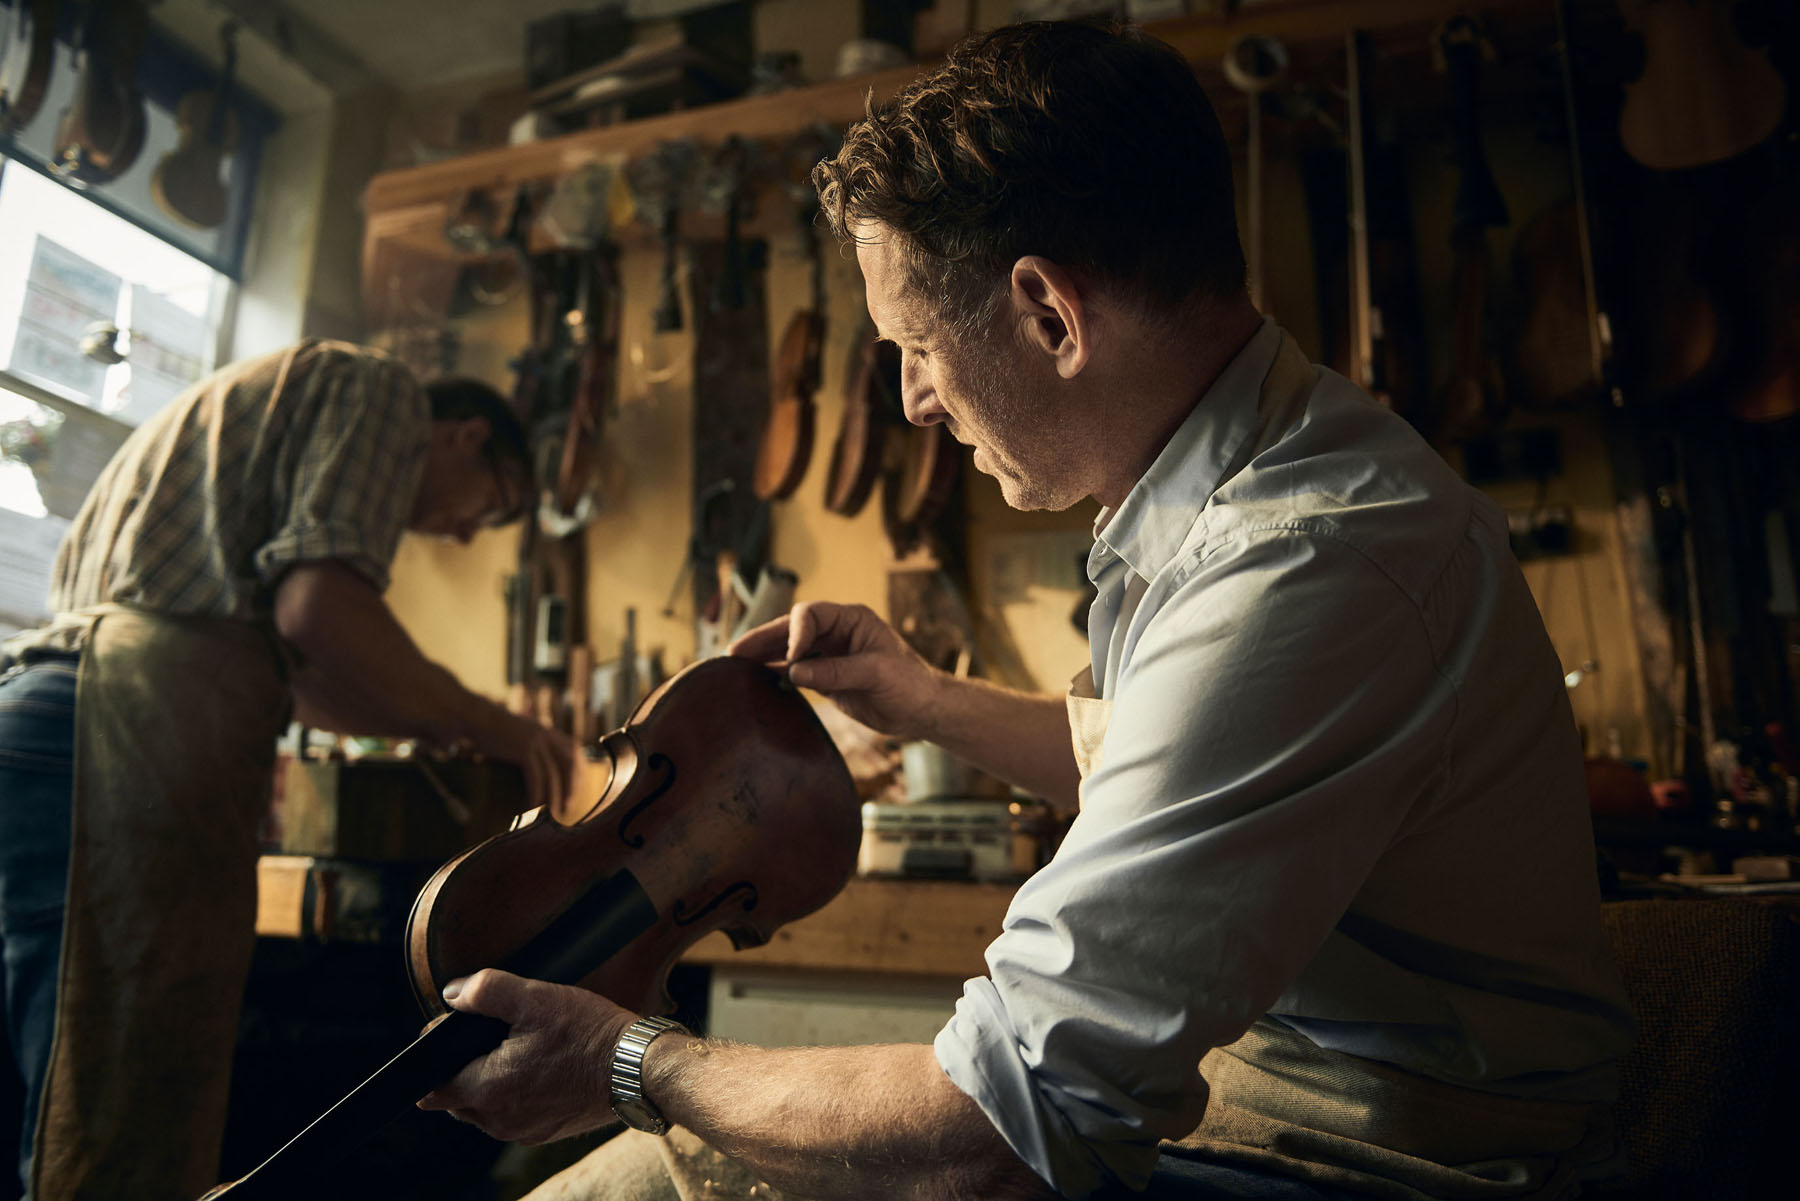 Stringed instruments being repaired by craftsmen